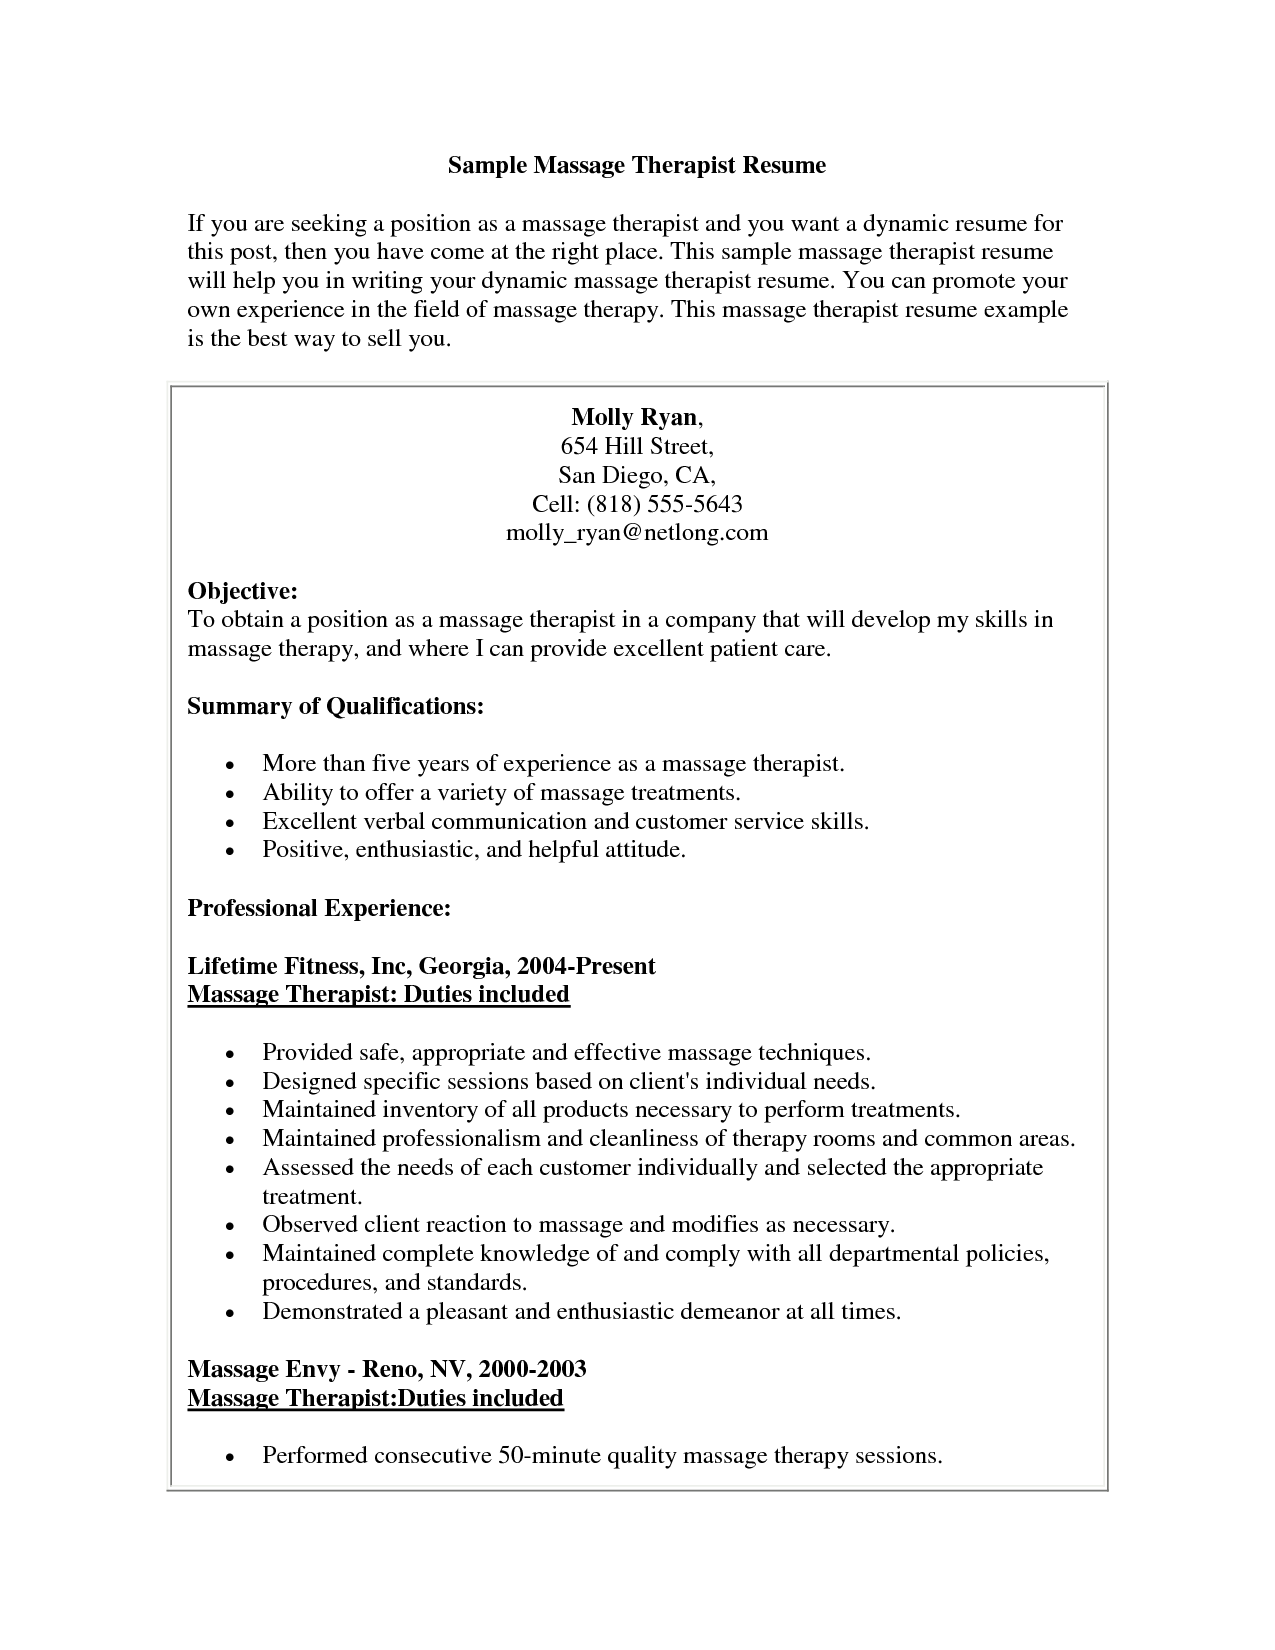 Accountant Resume Professional Summary Putting Bilingual